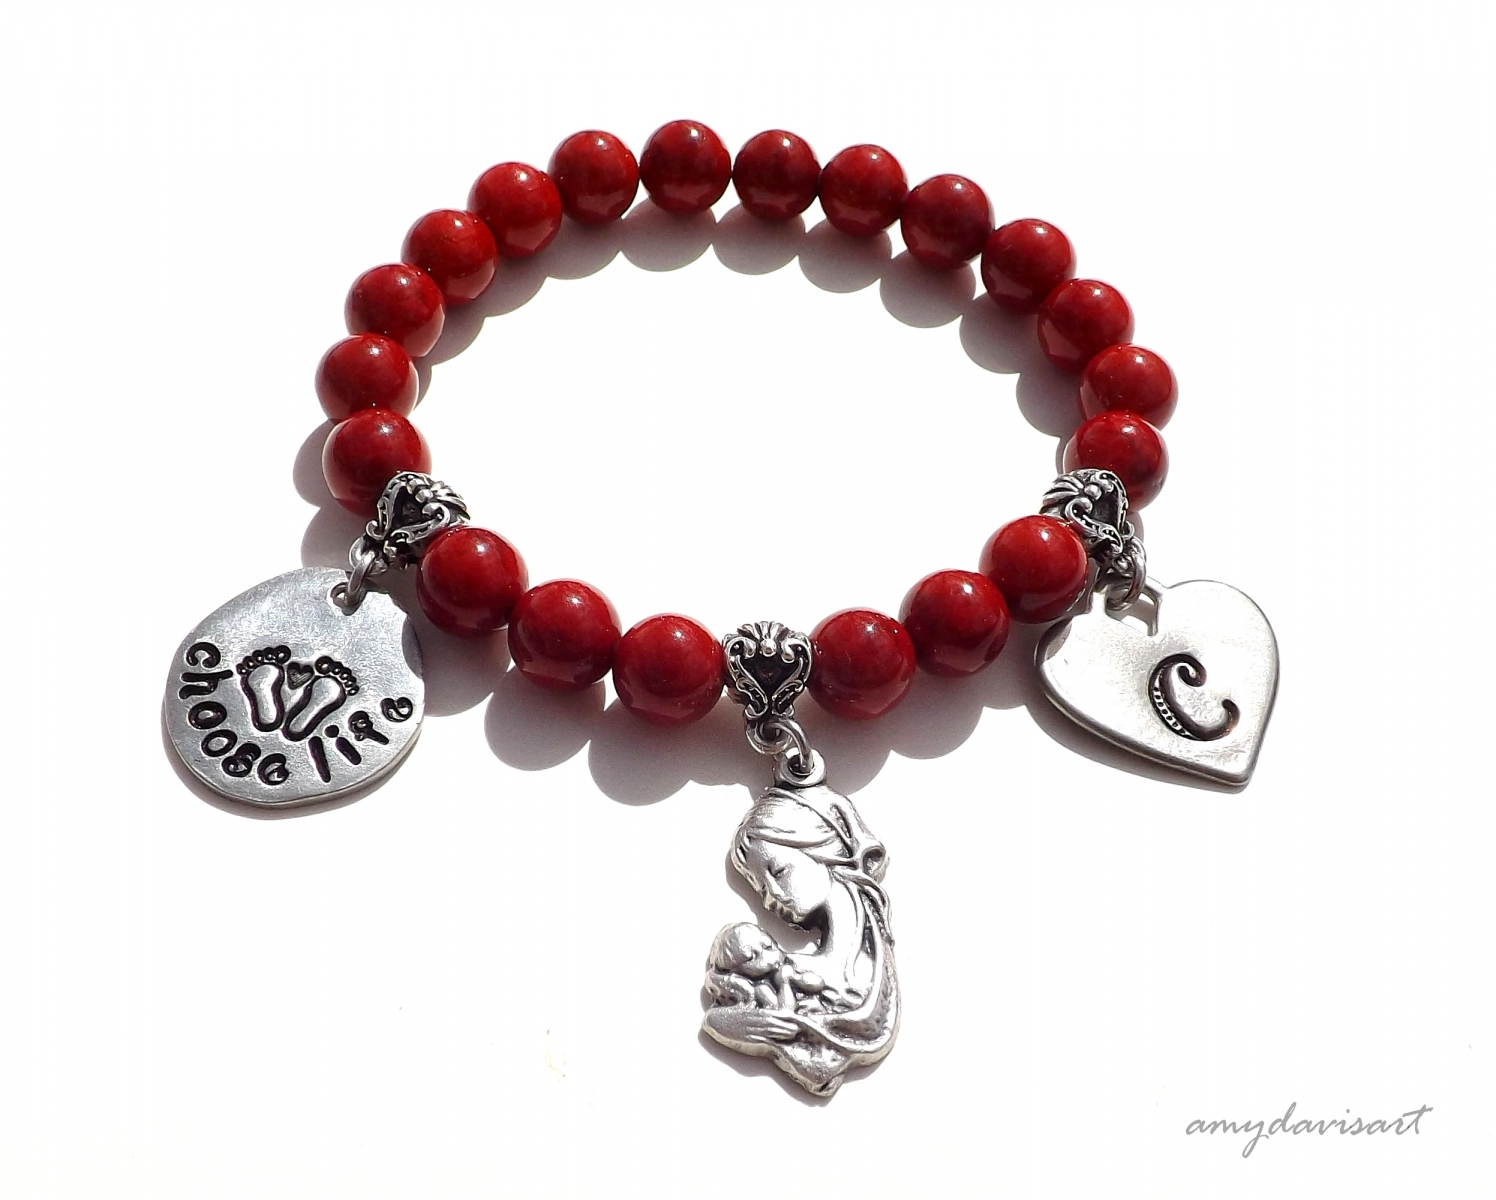 Choose Life Christian Bracelet, Personalized Initial Bracelet